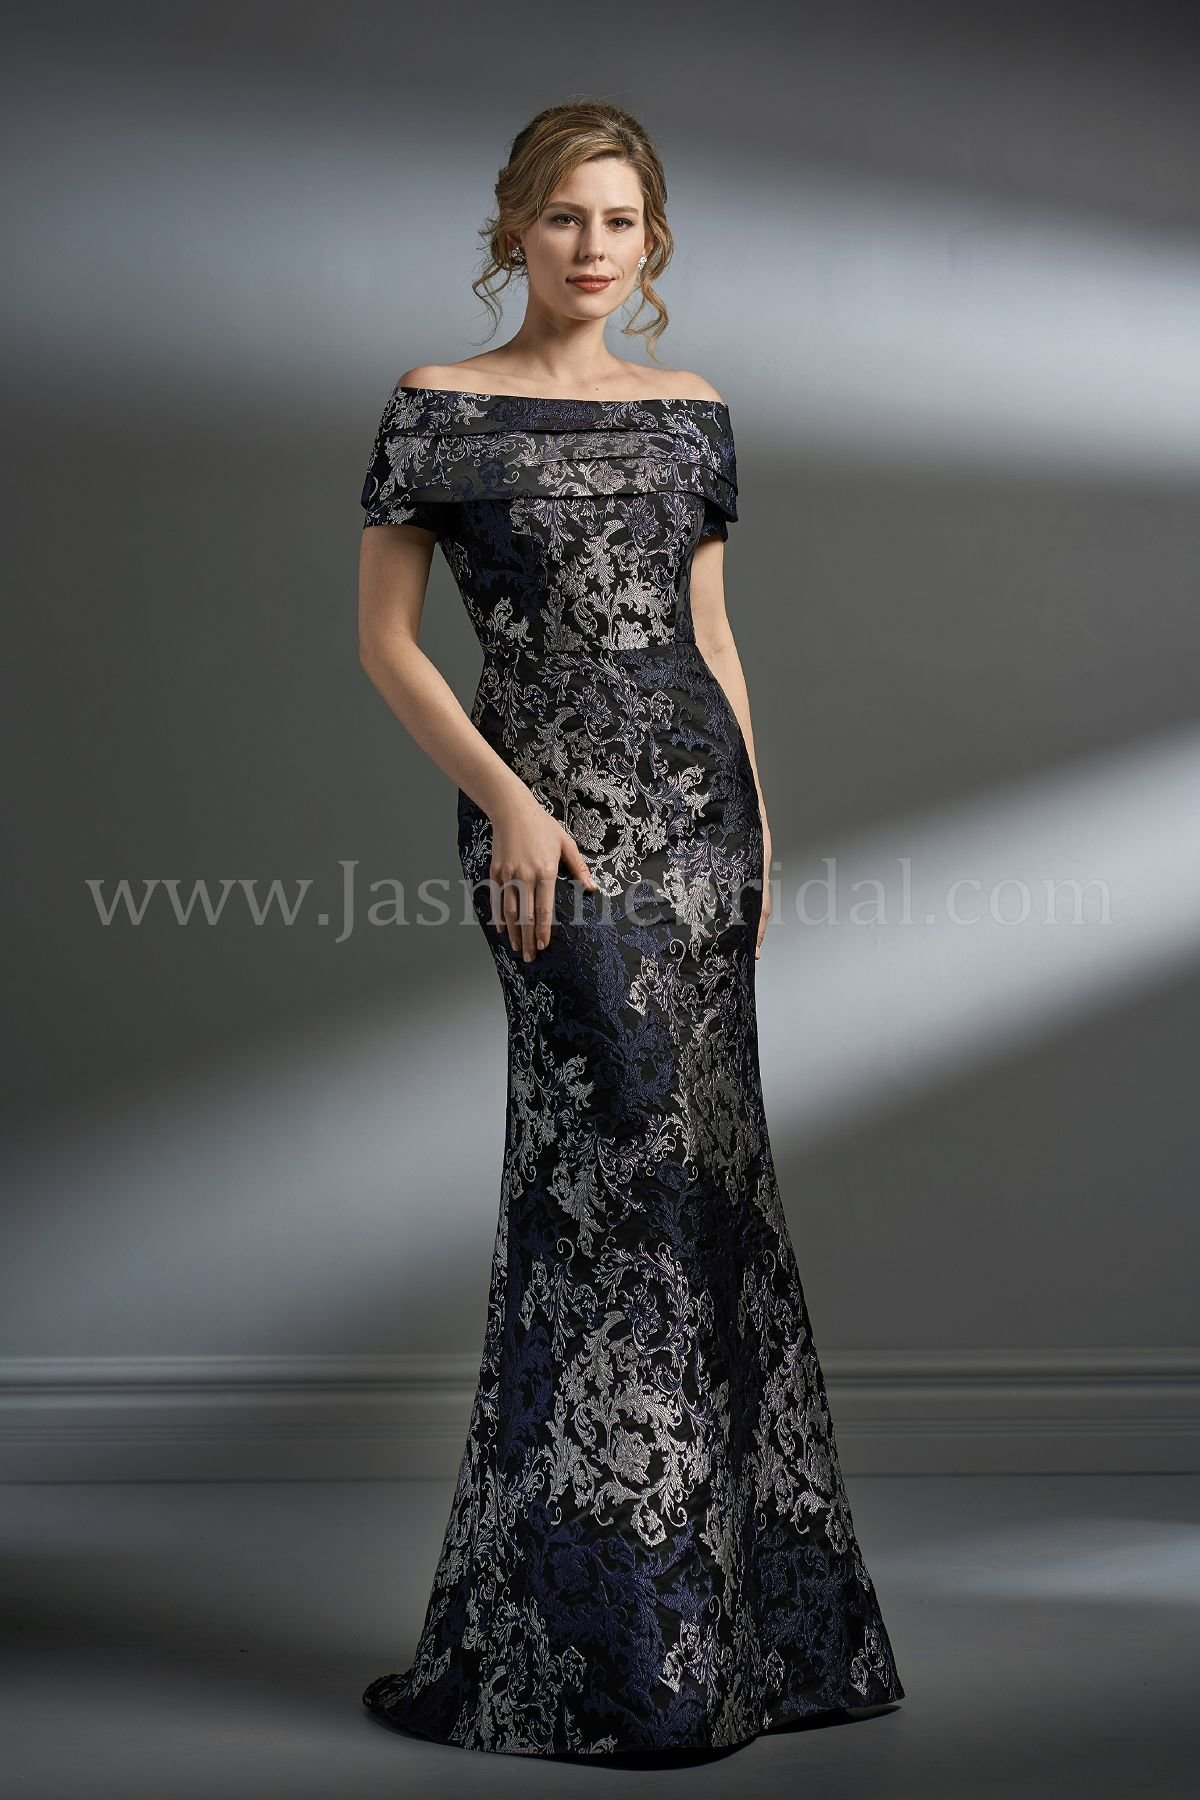 mother-of-the-bride-dresses-K198066-F